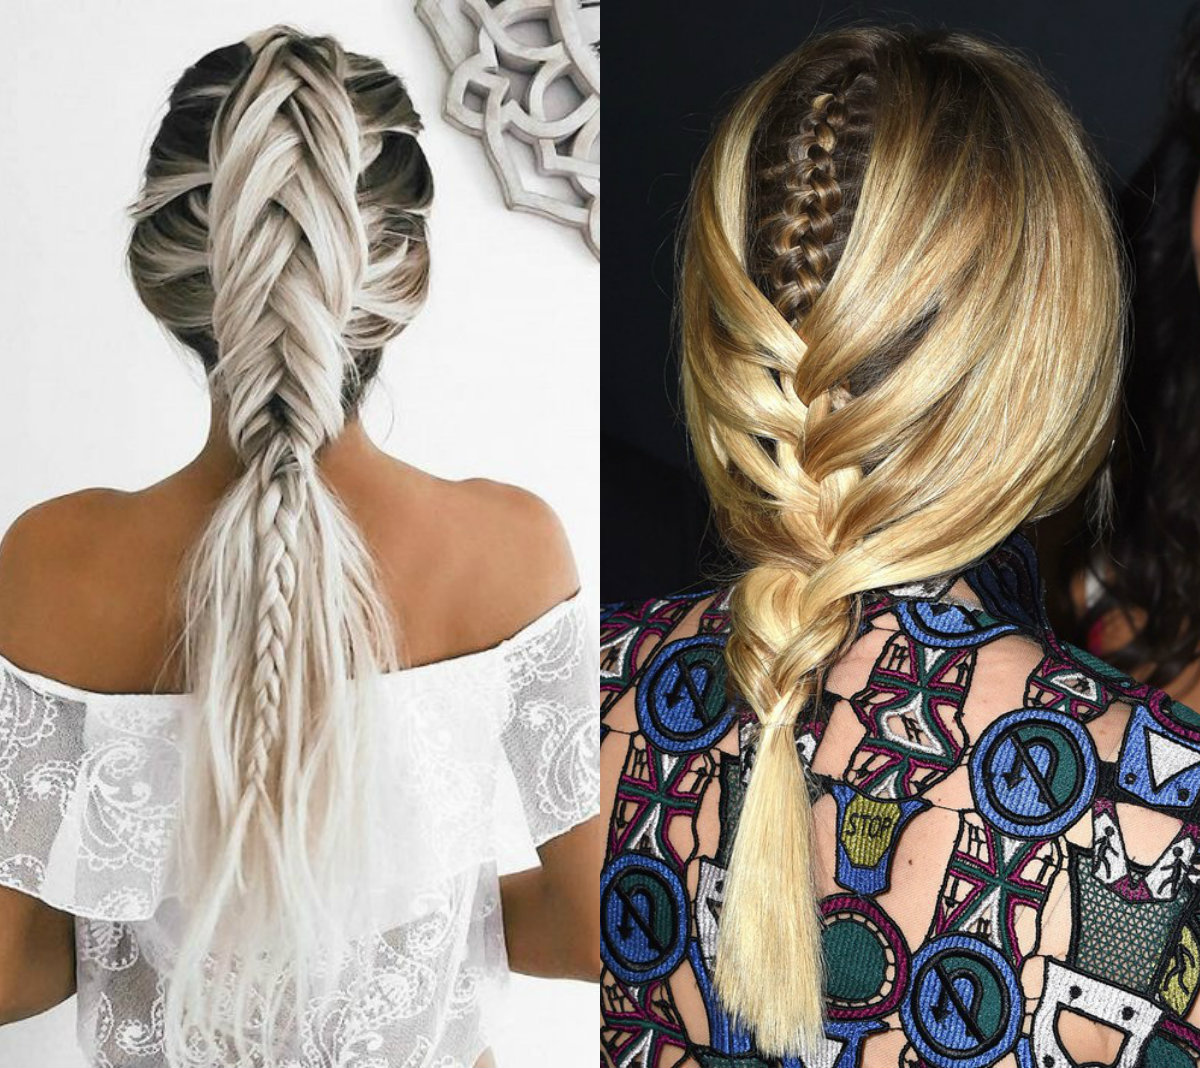 Unicorn Braids Hairstyles From Runways To Streets